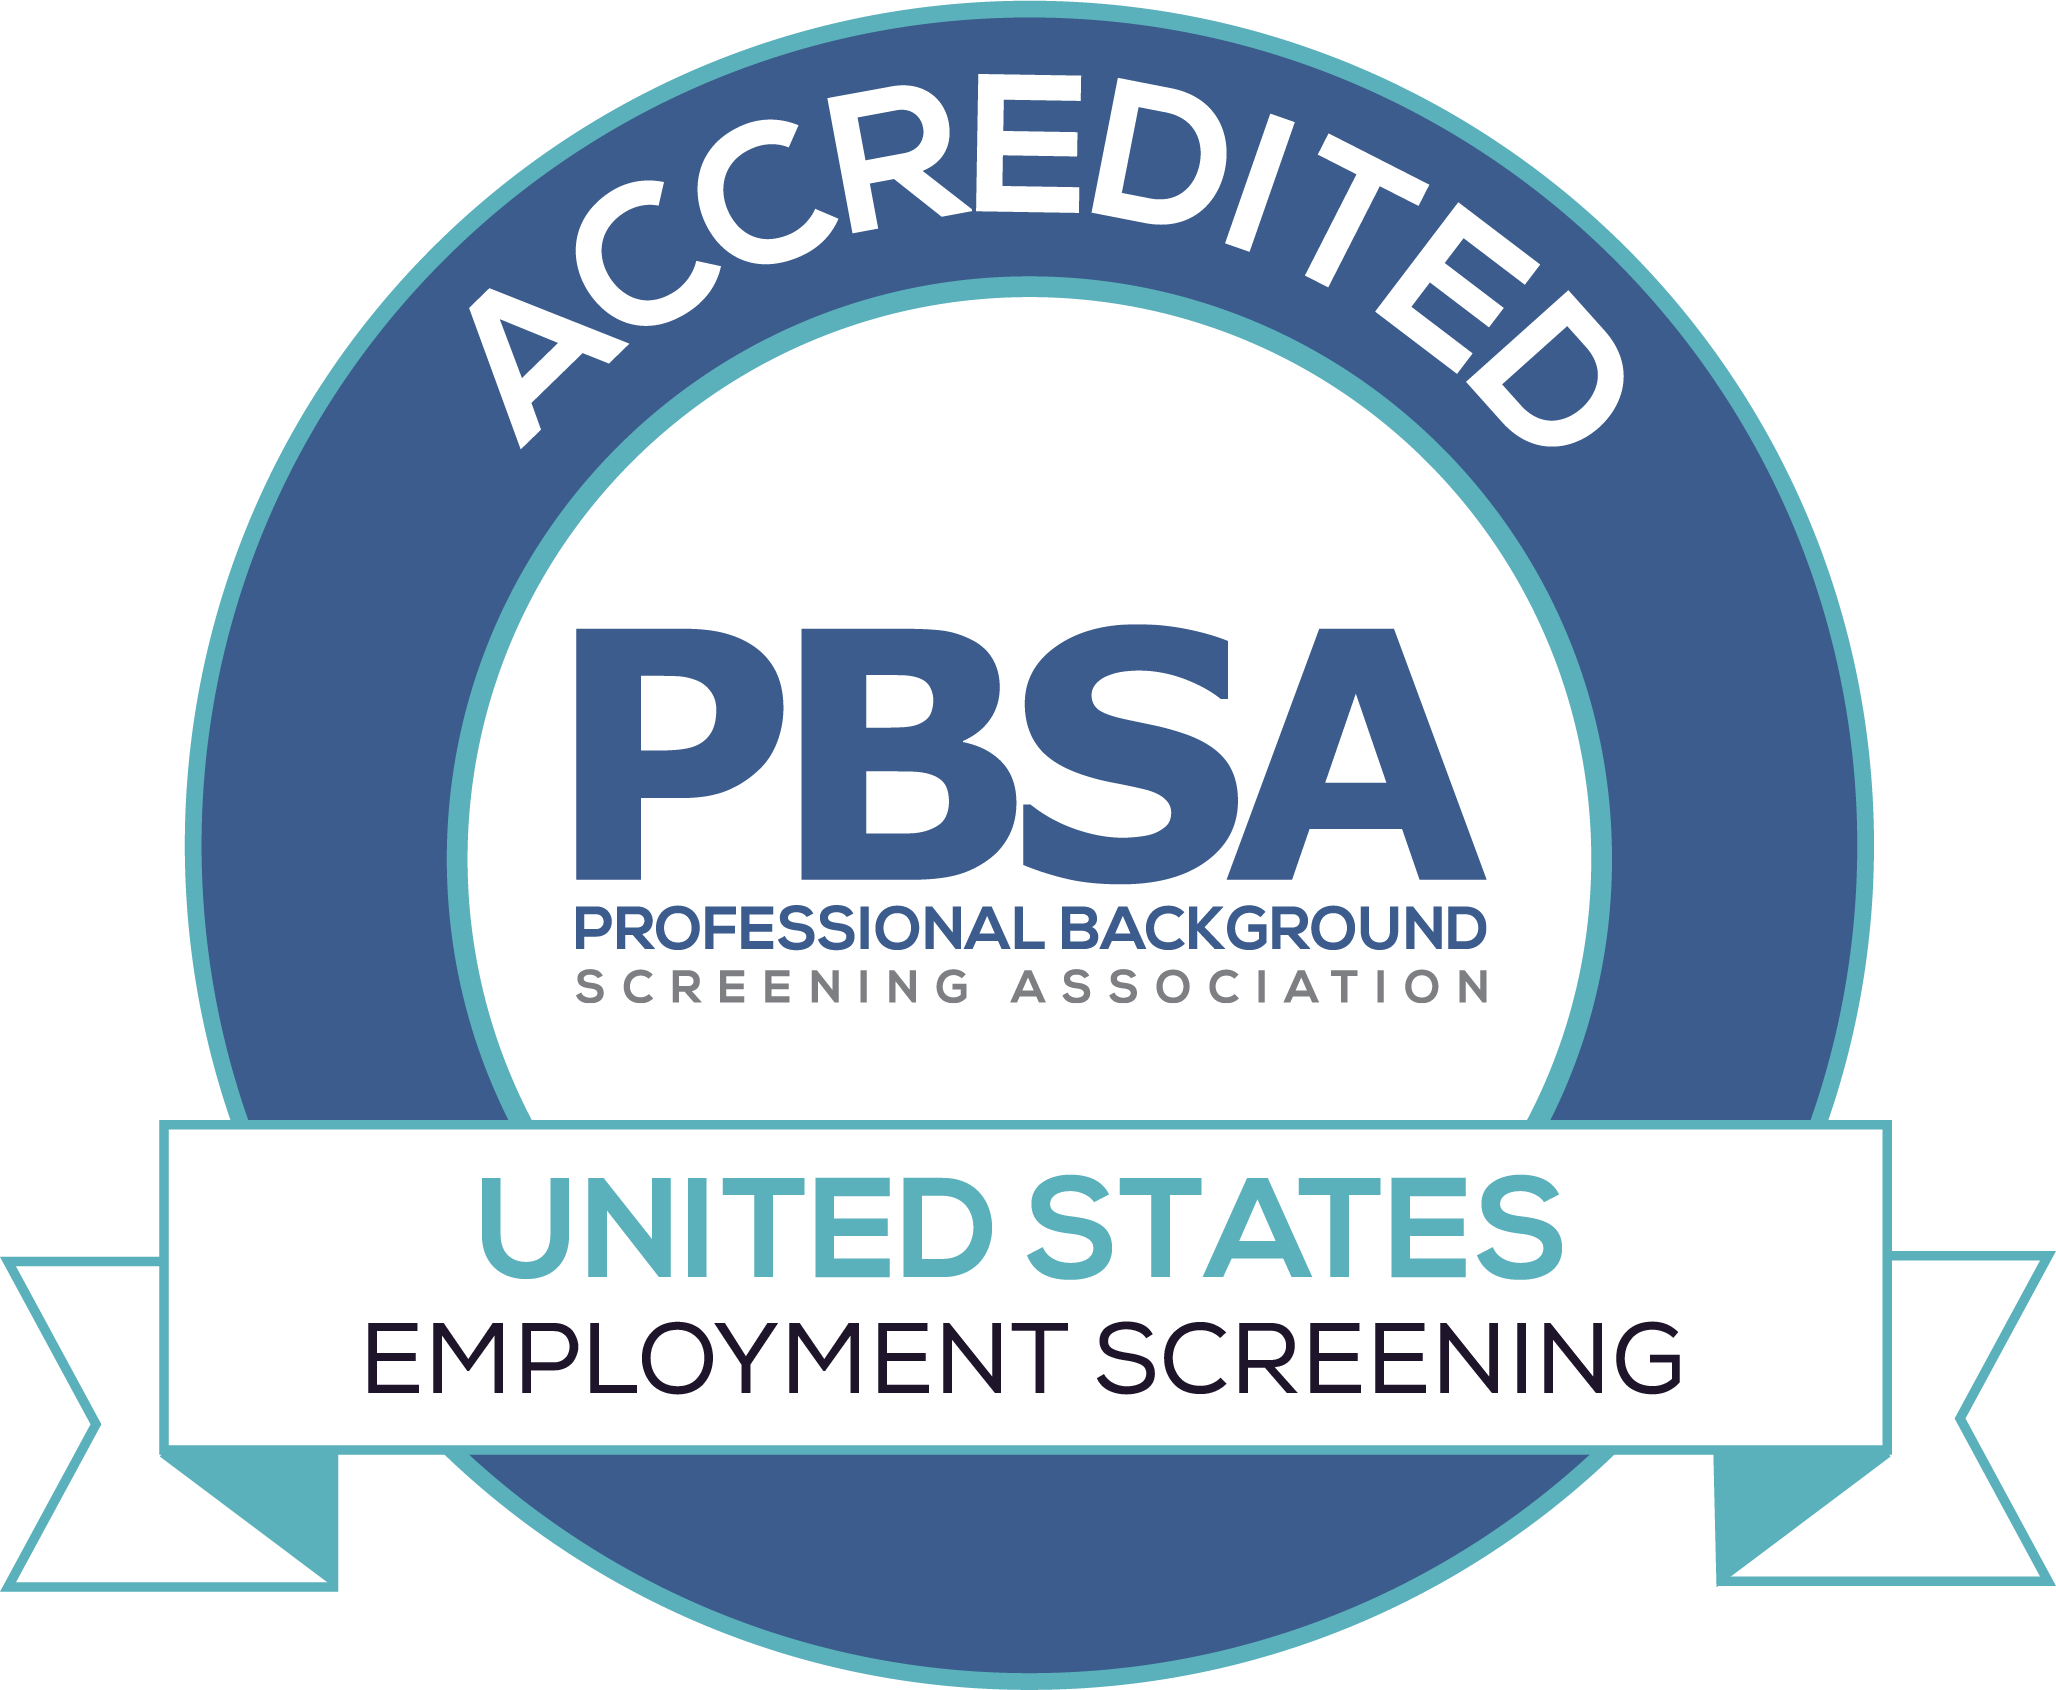 PBSA_Accreditation_Logo_Transparent.png